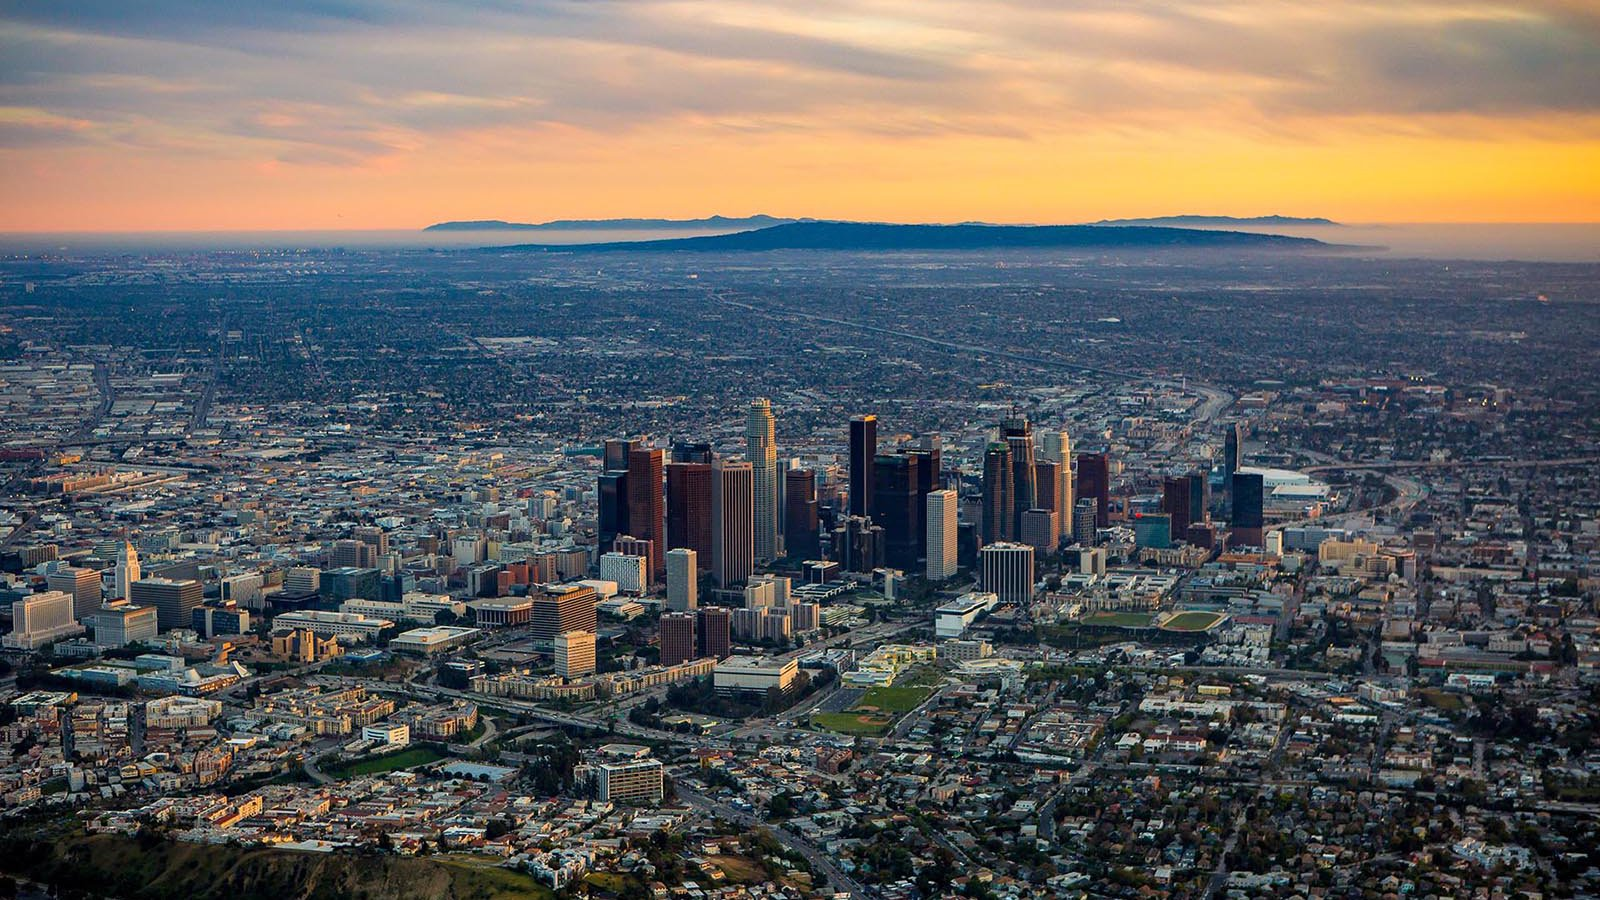 Aerial cityscape of Downtown Los Angeles Skyline at Sunset with Santa Catalina Island in the background